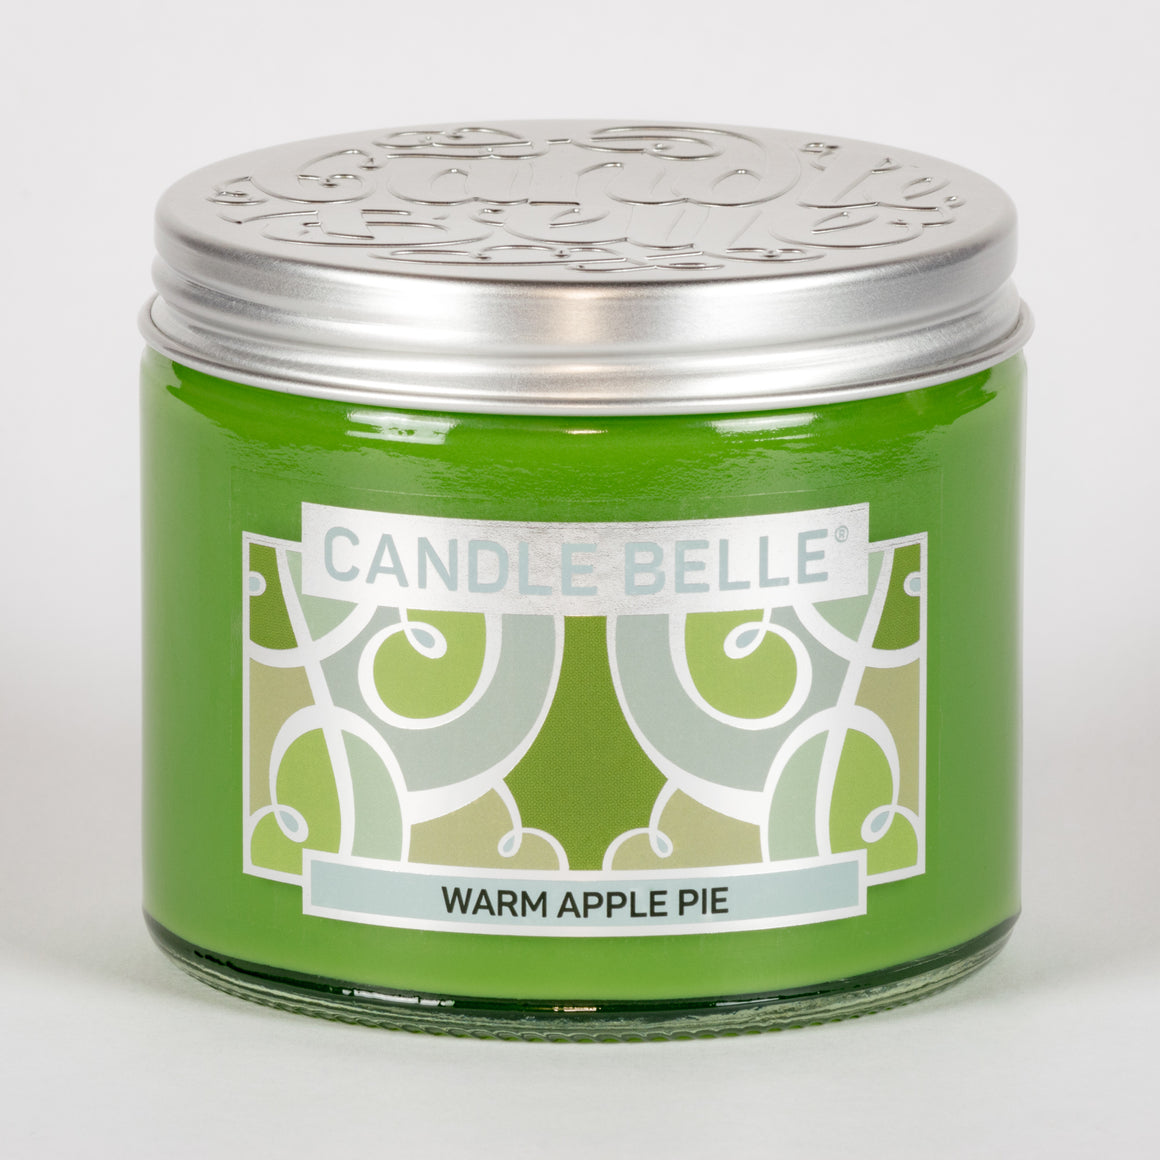 Candle Belle® Warm Apple Pie Fragranced Twin Wick Jar Candle 240g (3 Pack)